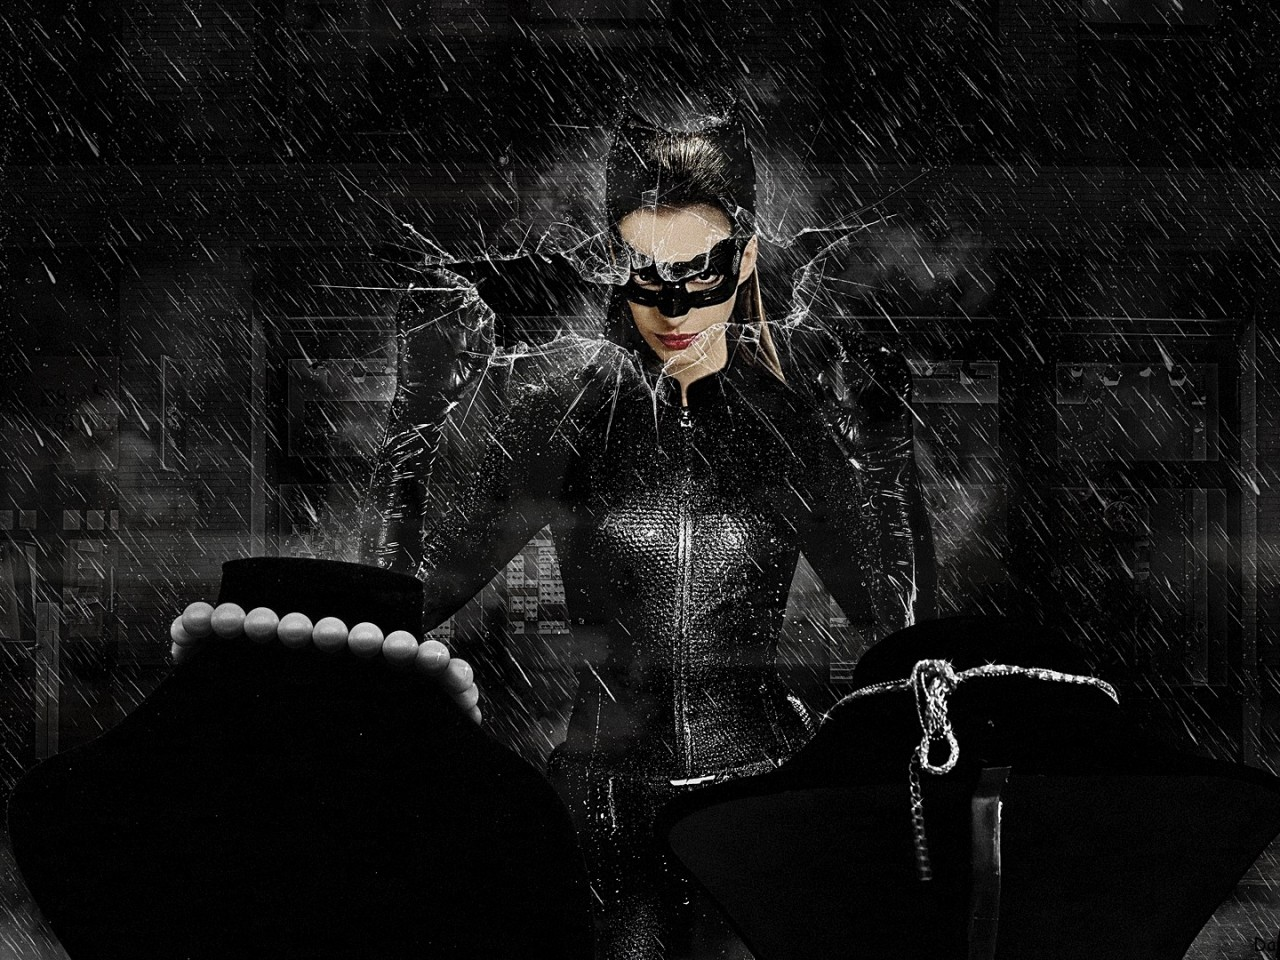 Download 39;selina kyle/ catwoman39; HD wallpaper